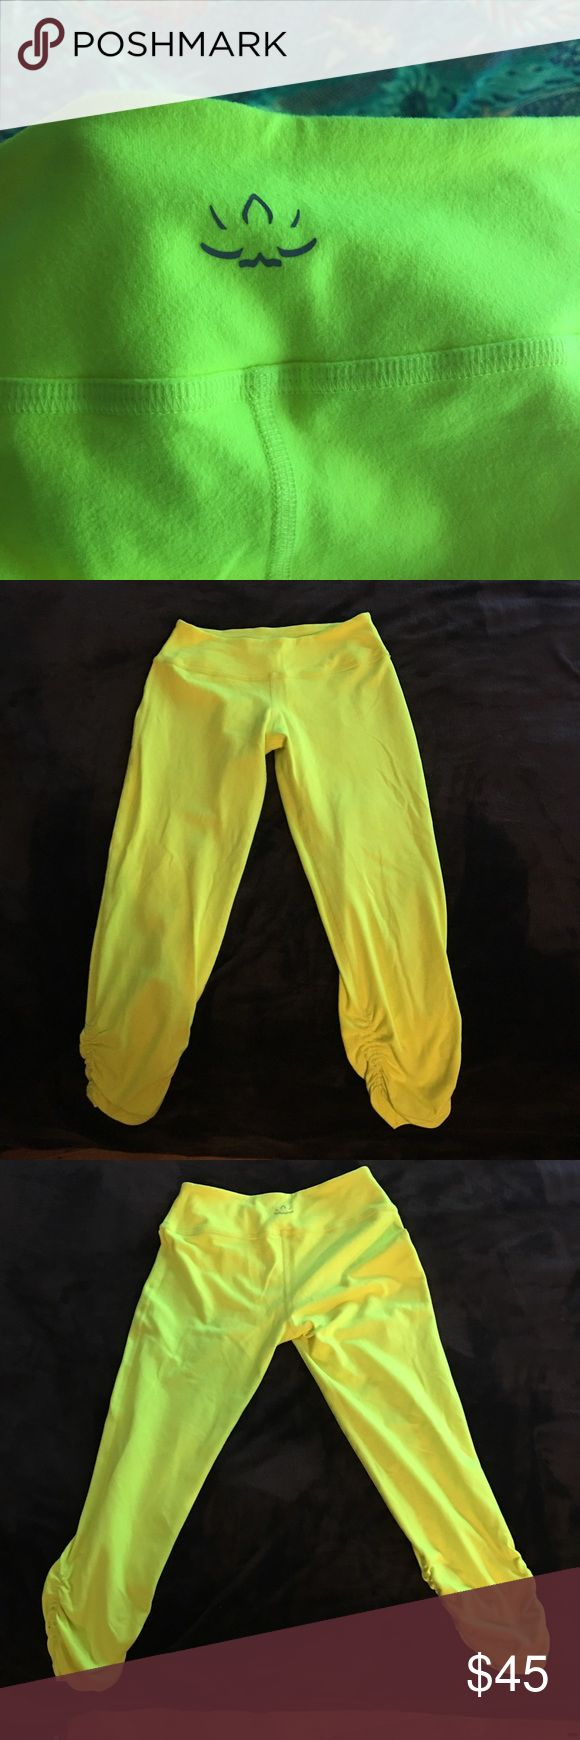 Beyond Yoga Gathered Capris Legging Neon Yellow These leggings have been worn once or twice and are in overall really good condition. They are the softest material and very flattering. The cover photo is the best representation of the actual color. Beyond Yoga Pants Capris